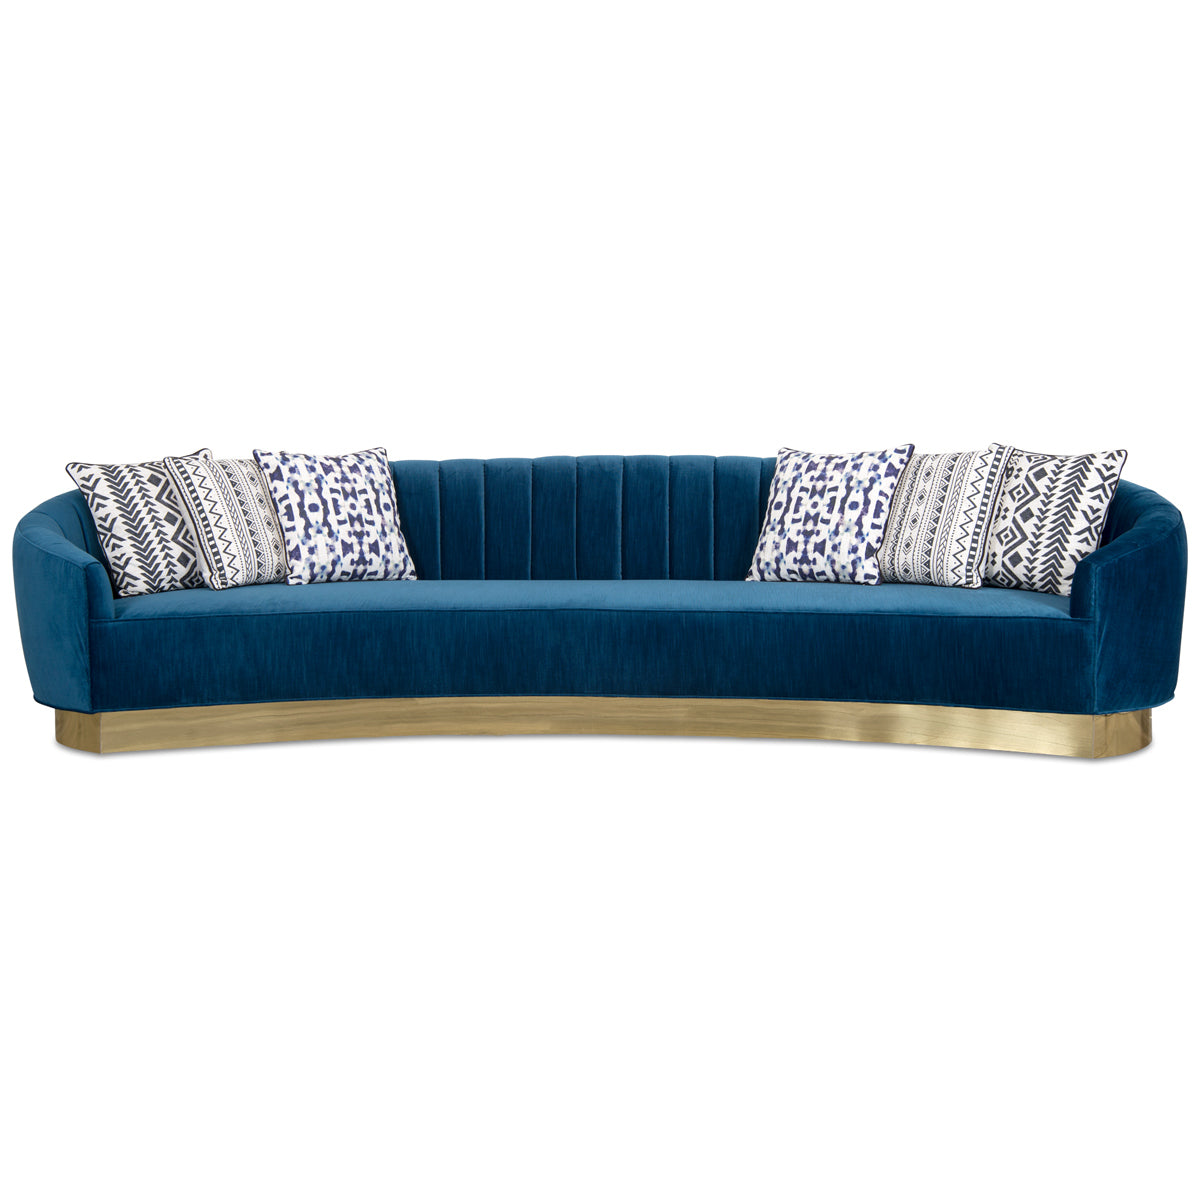 Art Deco 2 Sofa with Brass Toe Kick - ModShop1.com